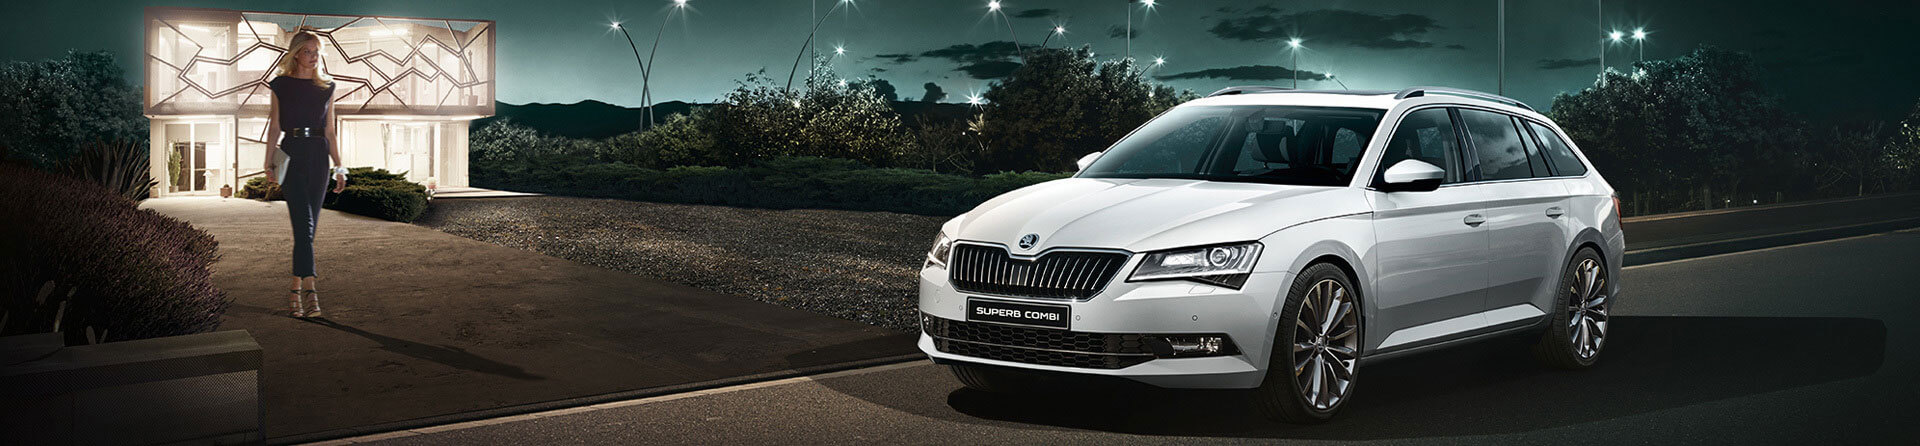 Skoda Internal Page Image